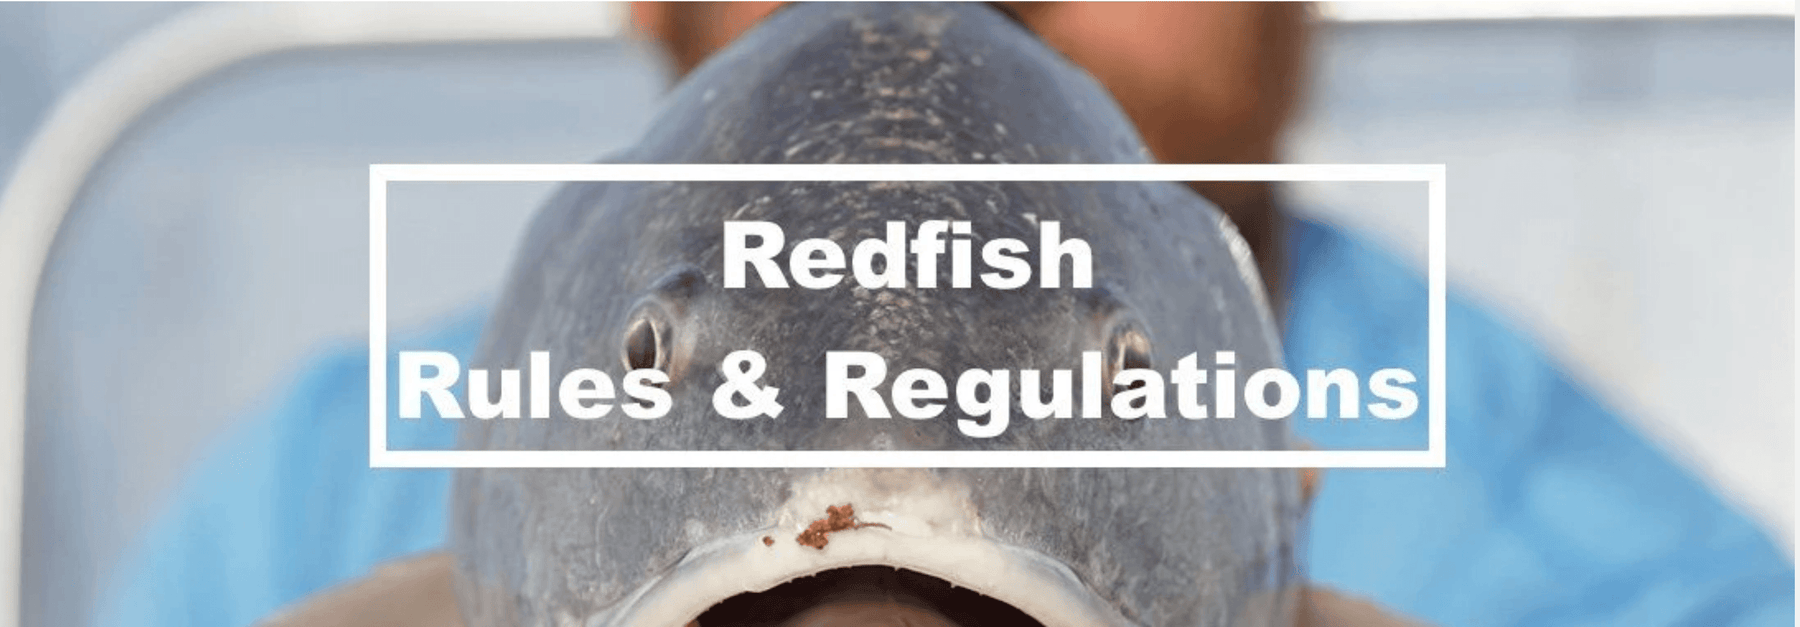 Redfish Regulations and Rules